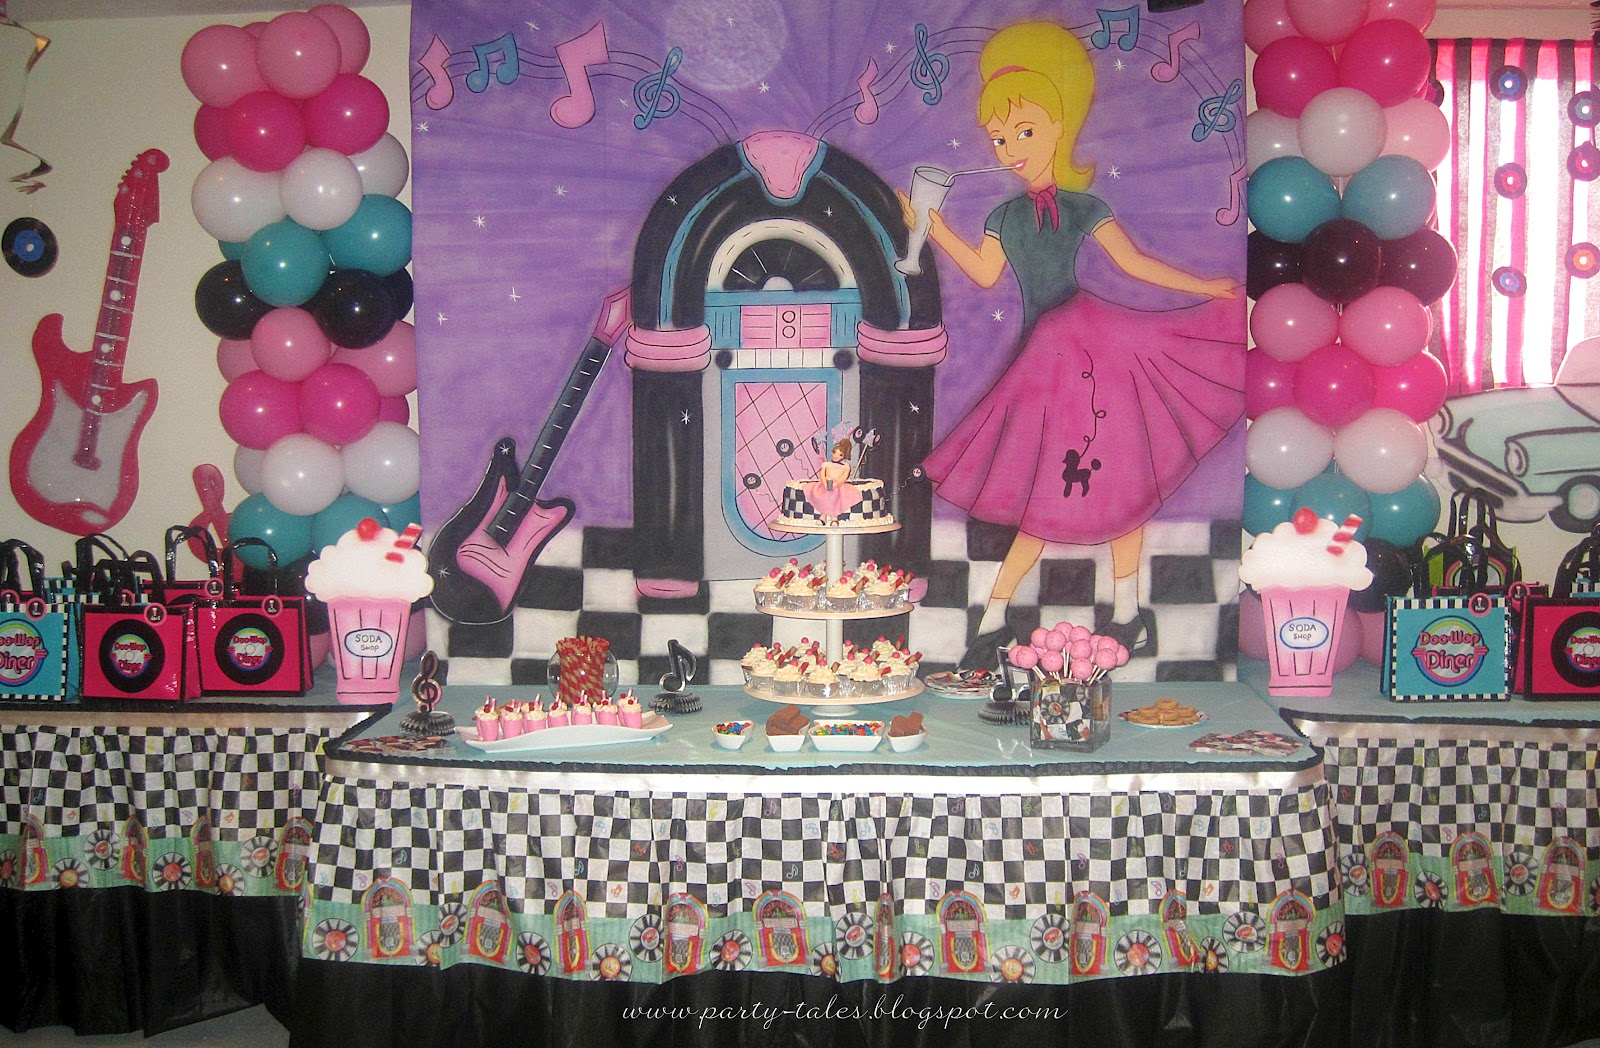 Party tales birthday party 50 39 s diner sock hop party - S birthday party decorations ...